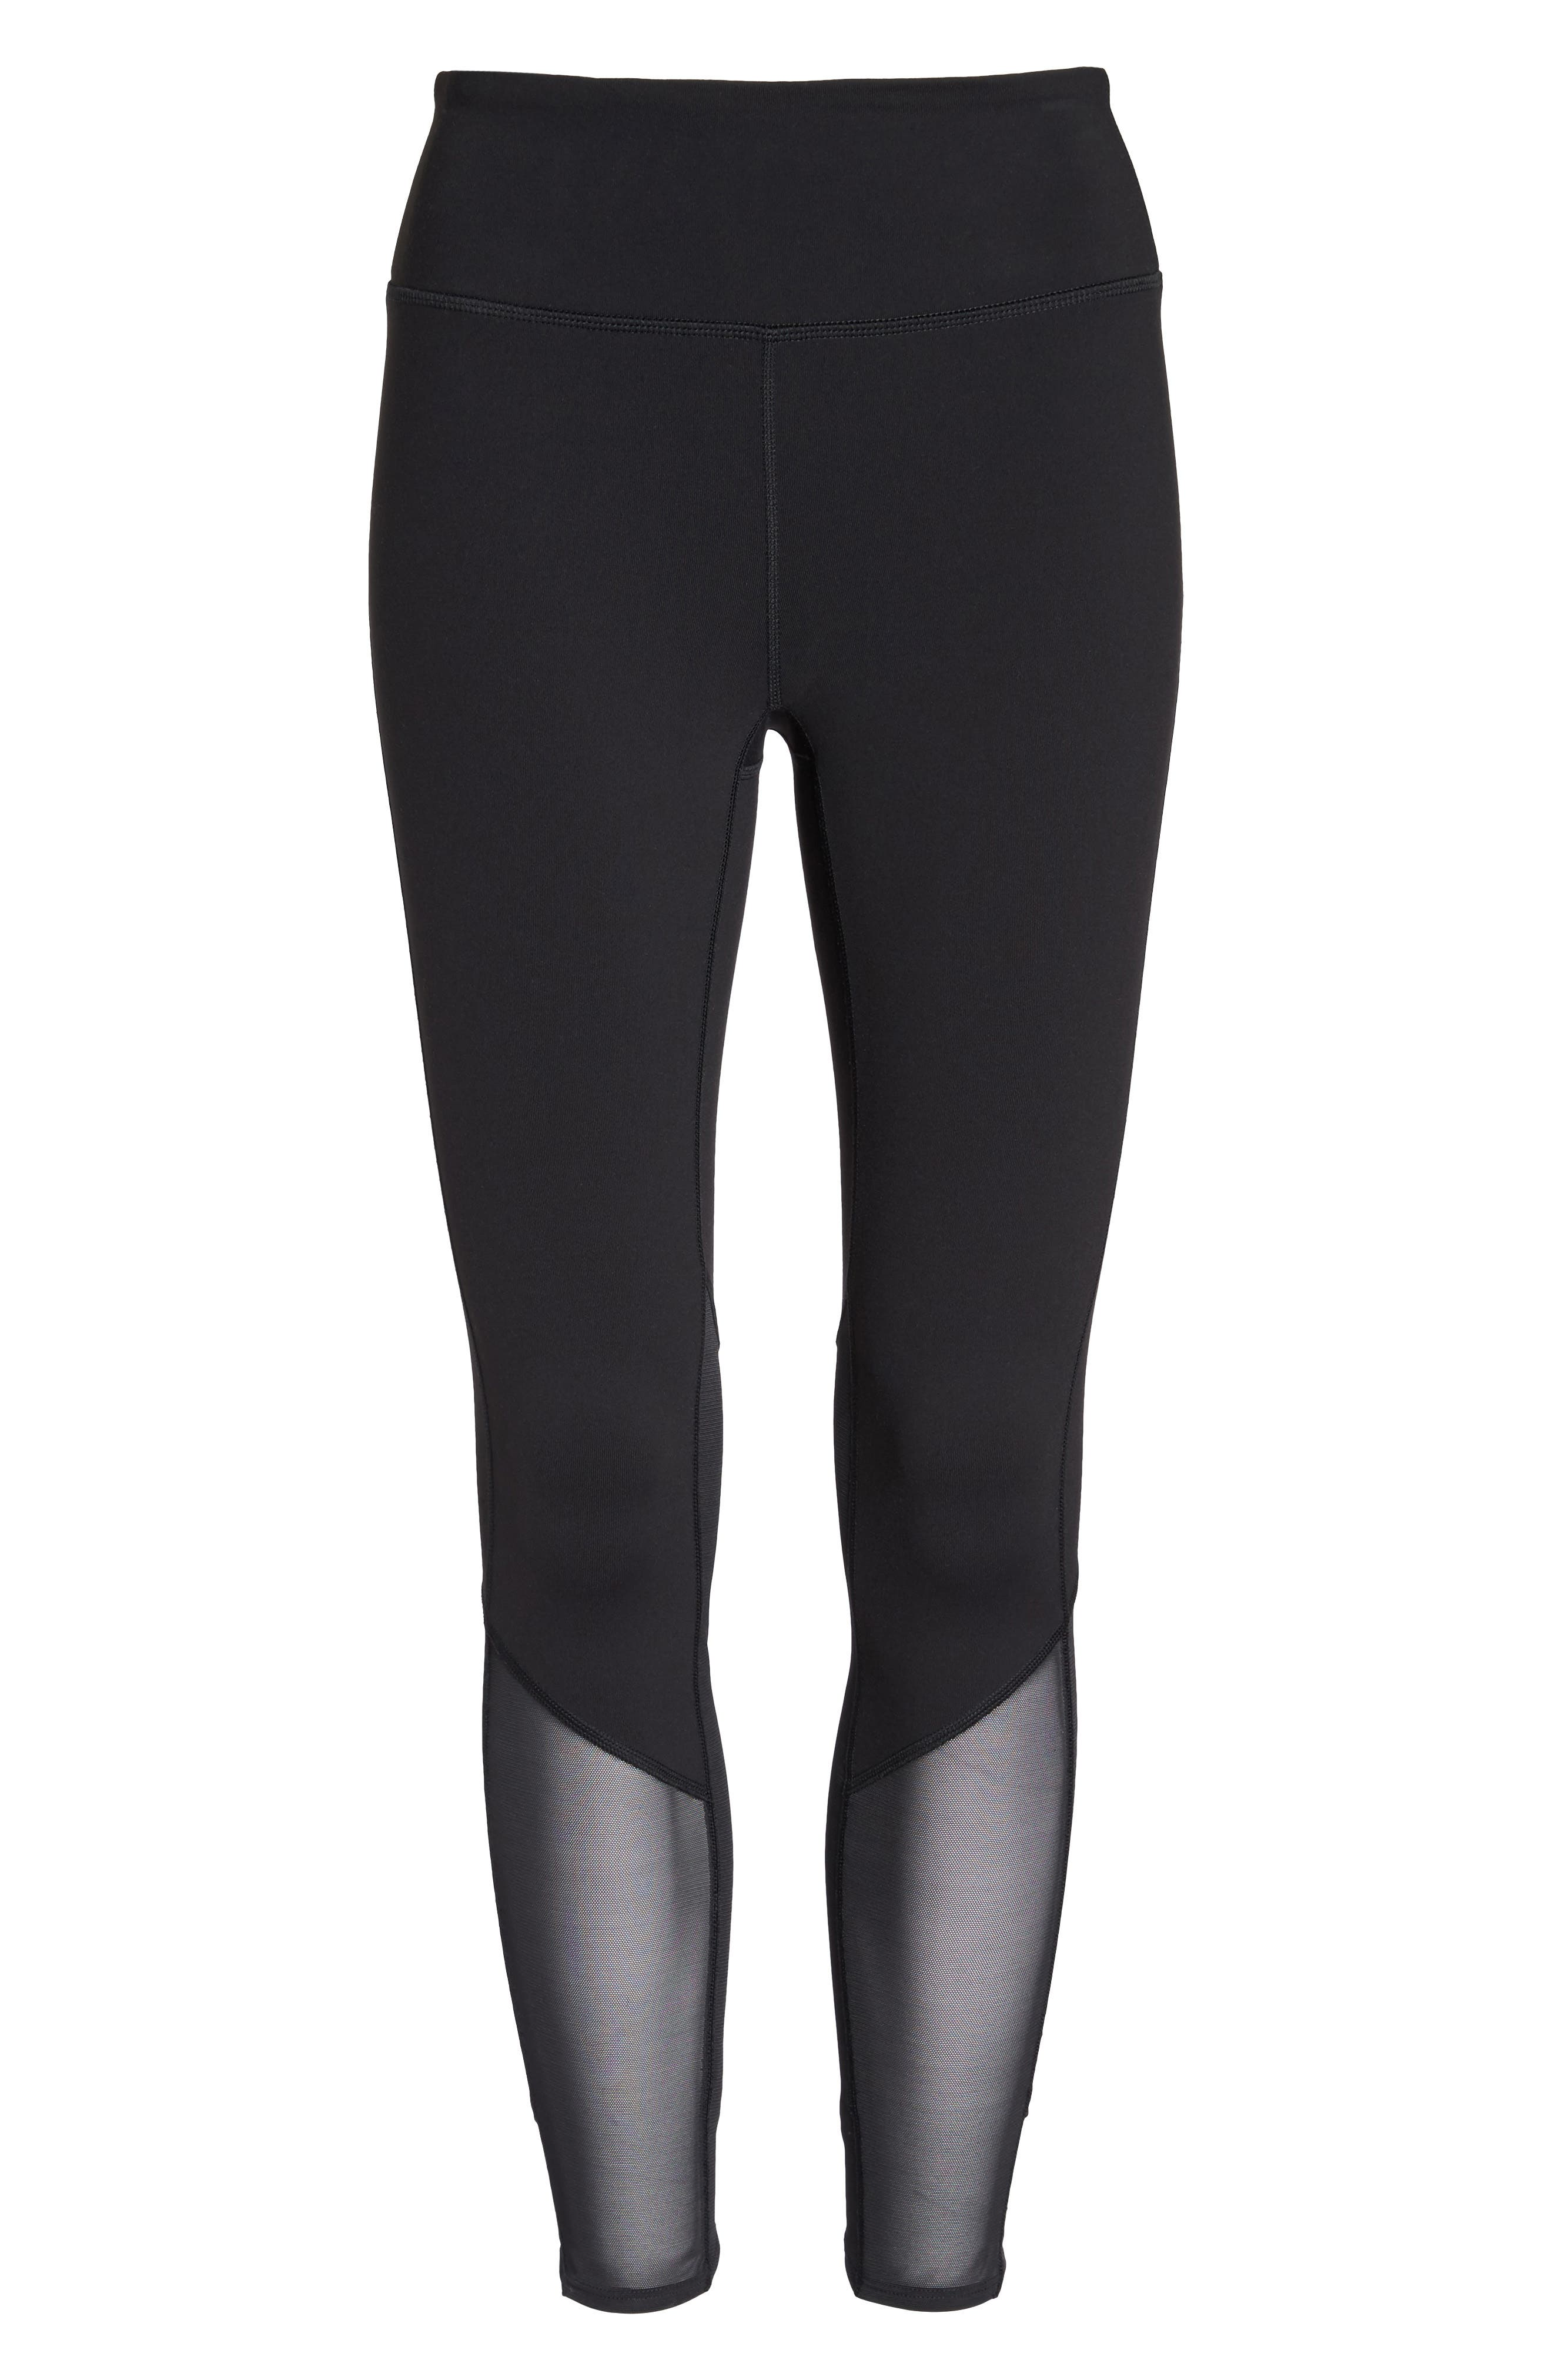 Elixir High Waist Ankle Leggings,                             Alternate thumbnail 6, color,